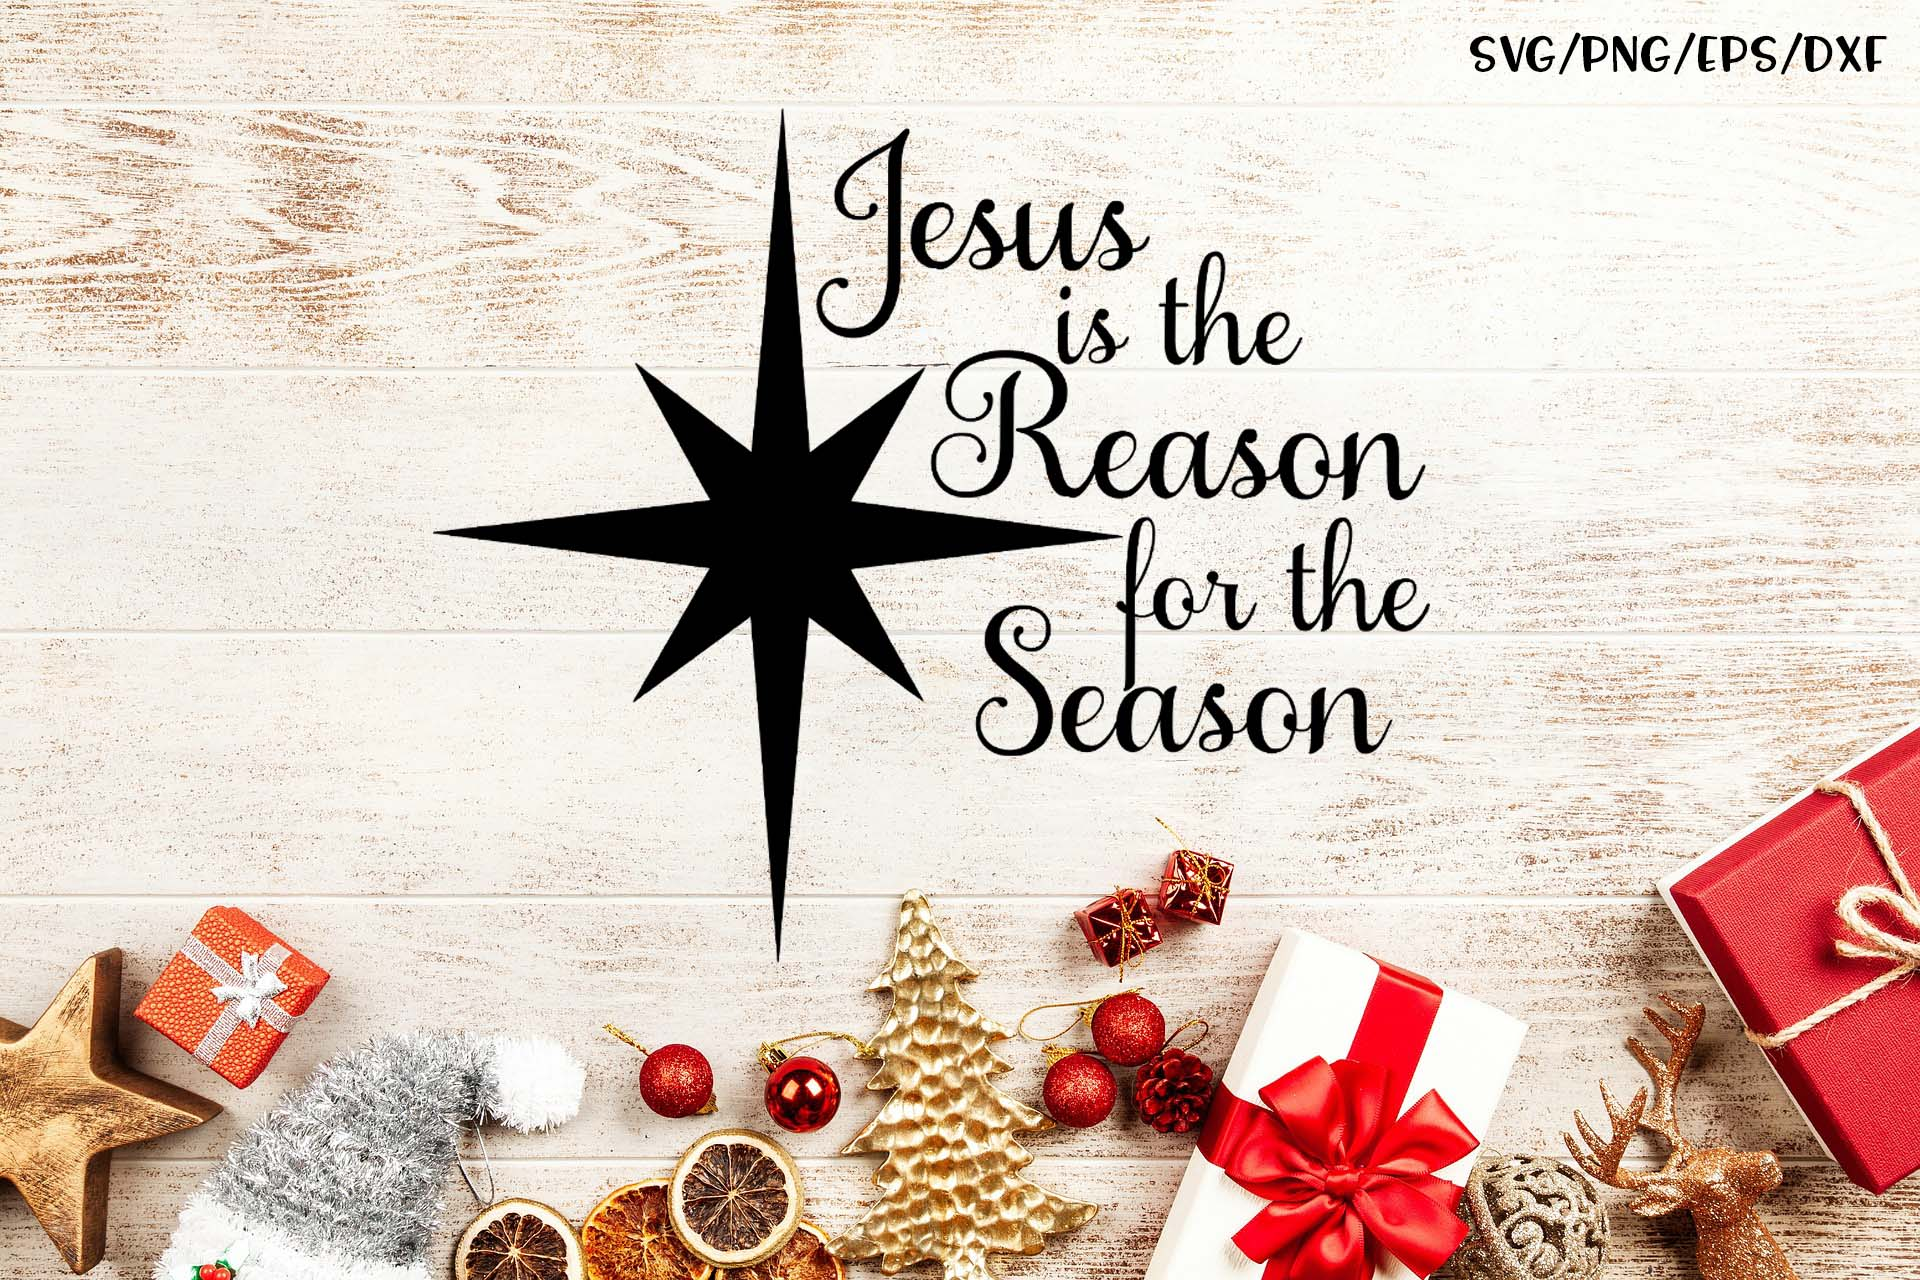 Download Free Jesus Is The Reason For The Season Grafik Von Sheryl Holst for Cricut Explore, Silhouette and other cutting machines.